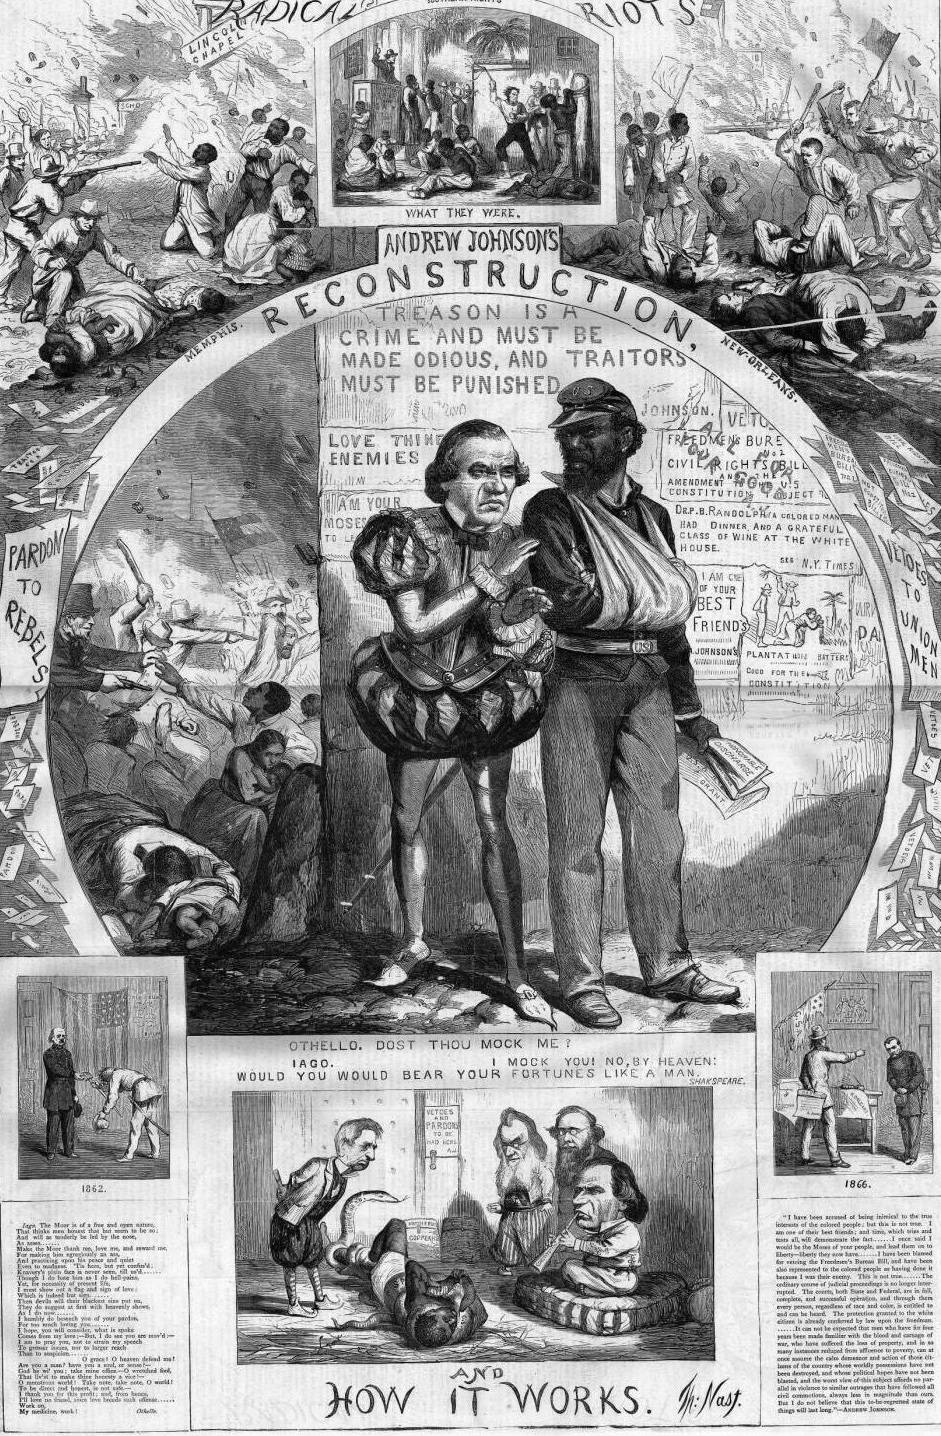 """Reconstruction and How It Works,"" in Harper's Weekly shows President Johnson as Iago and a black soldier as Othello, drawing a parallel between Iago's manipulative treatment of Othello with Johnson's behavior during Reconstruction. The image also shows Reconstruction riots in smaller images surrounding the central image, and includes some text from Othello and quotes from Johnson."